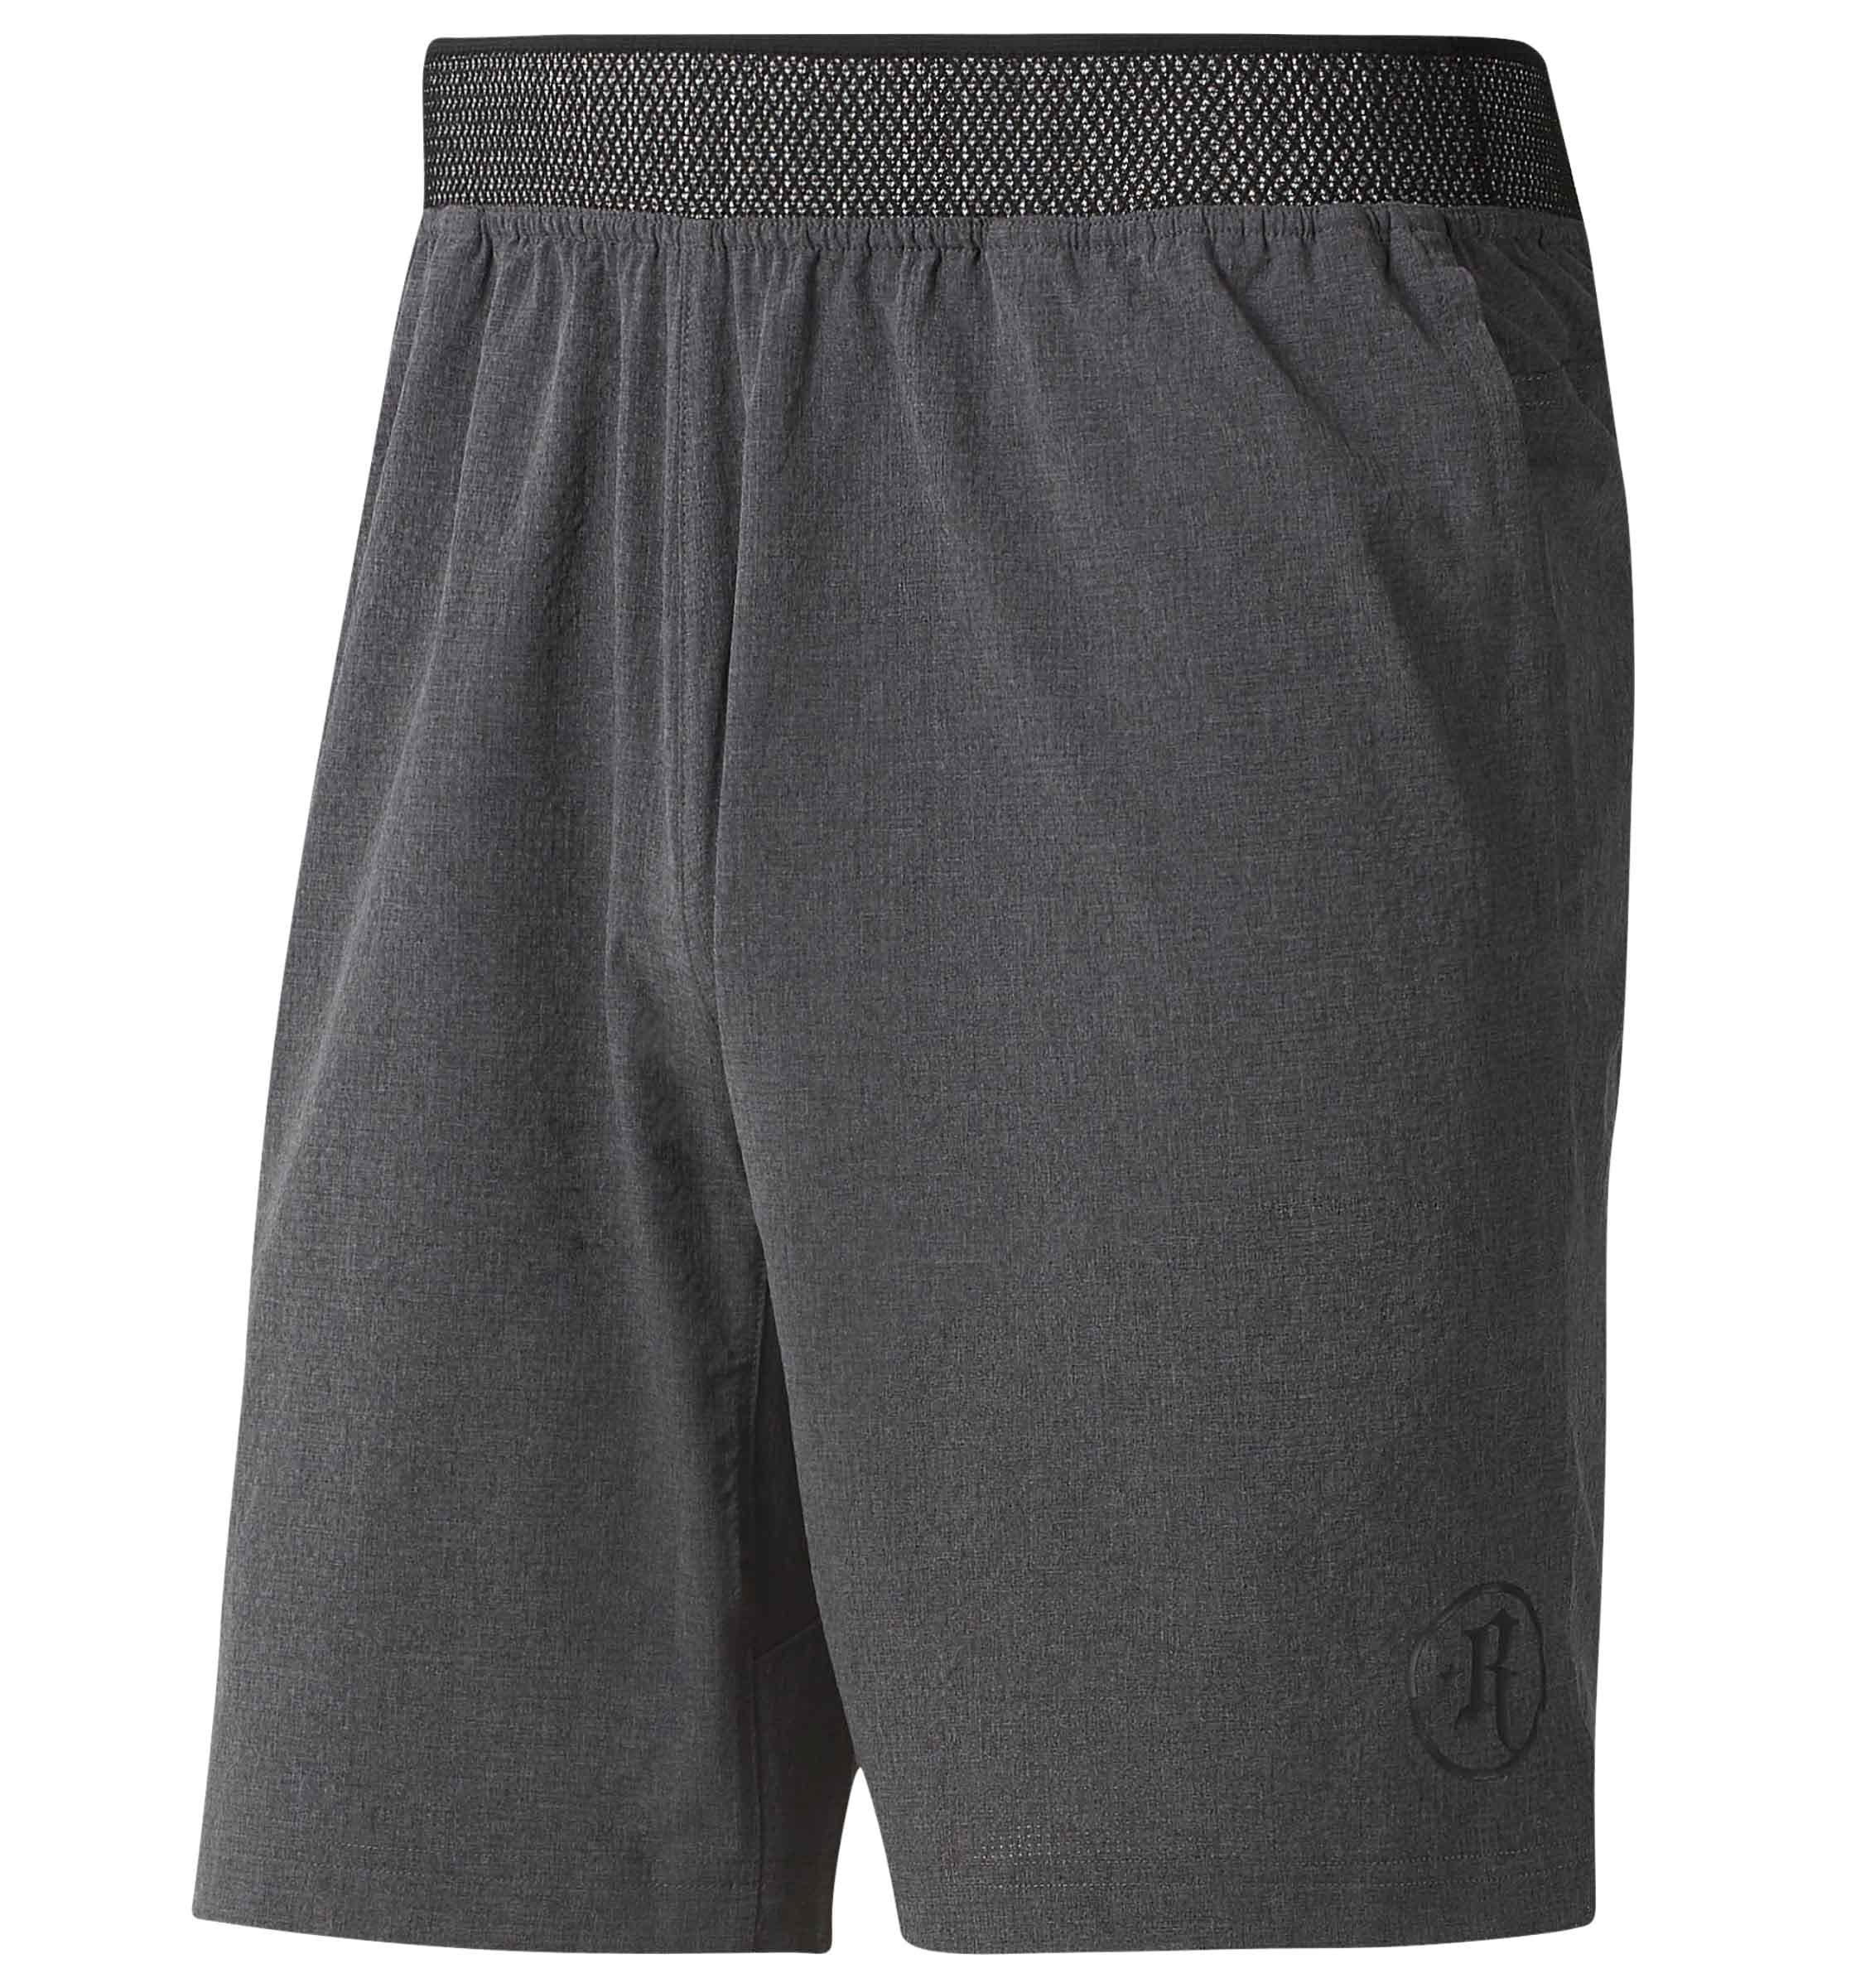 crossfit-shorts-froning